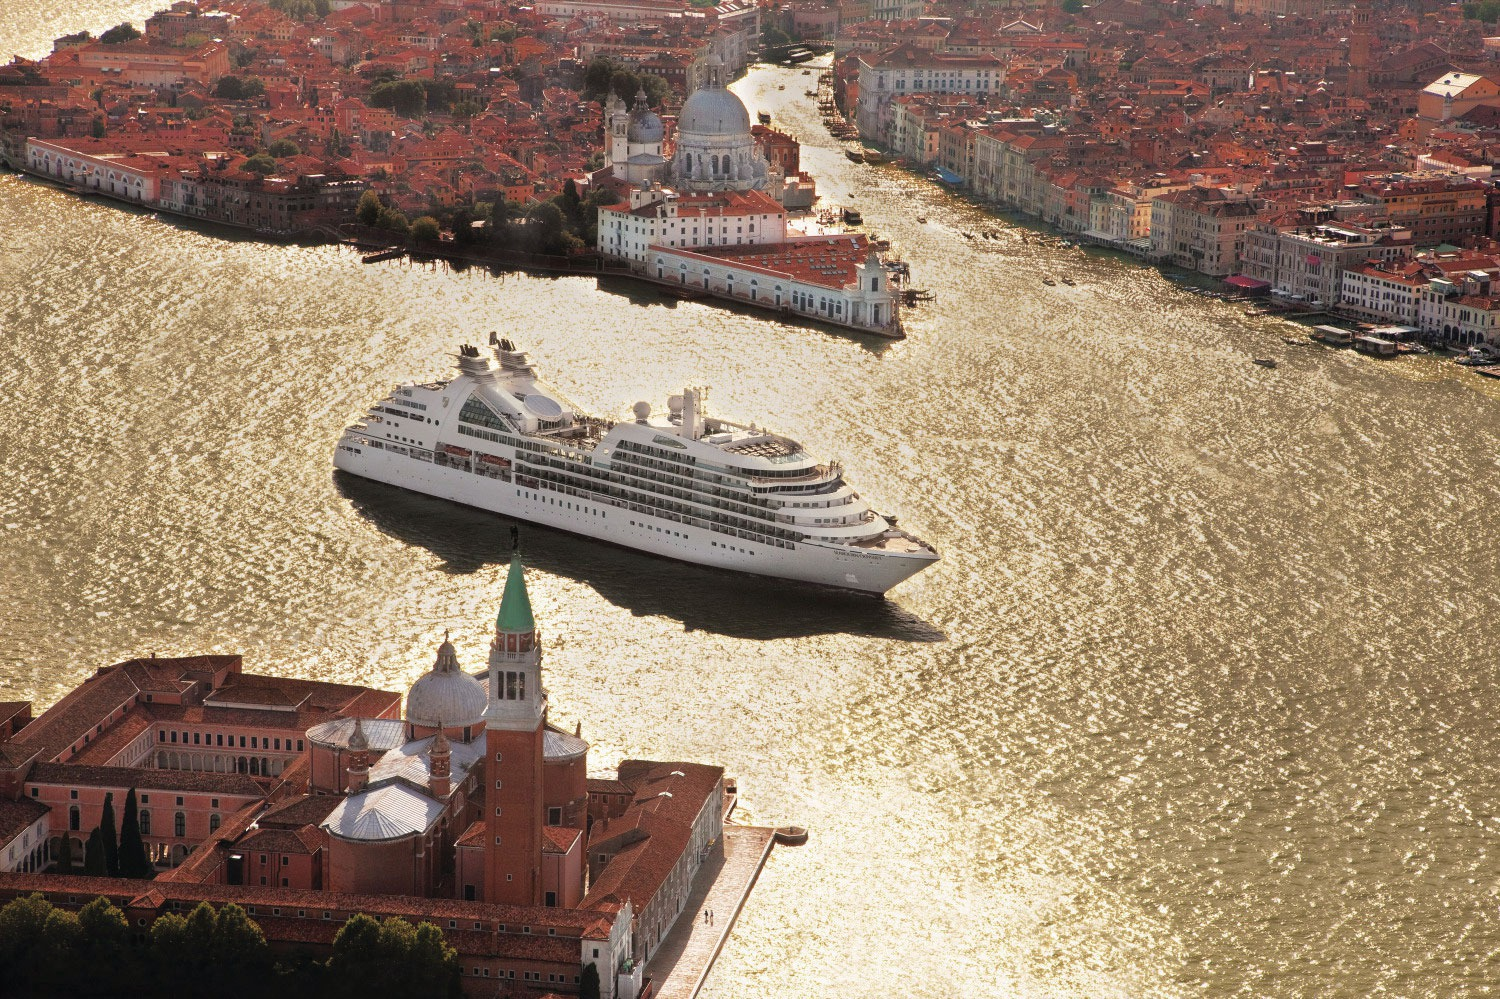 Seabourn Cruises - Seabourn Odyssey in Venice